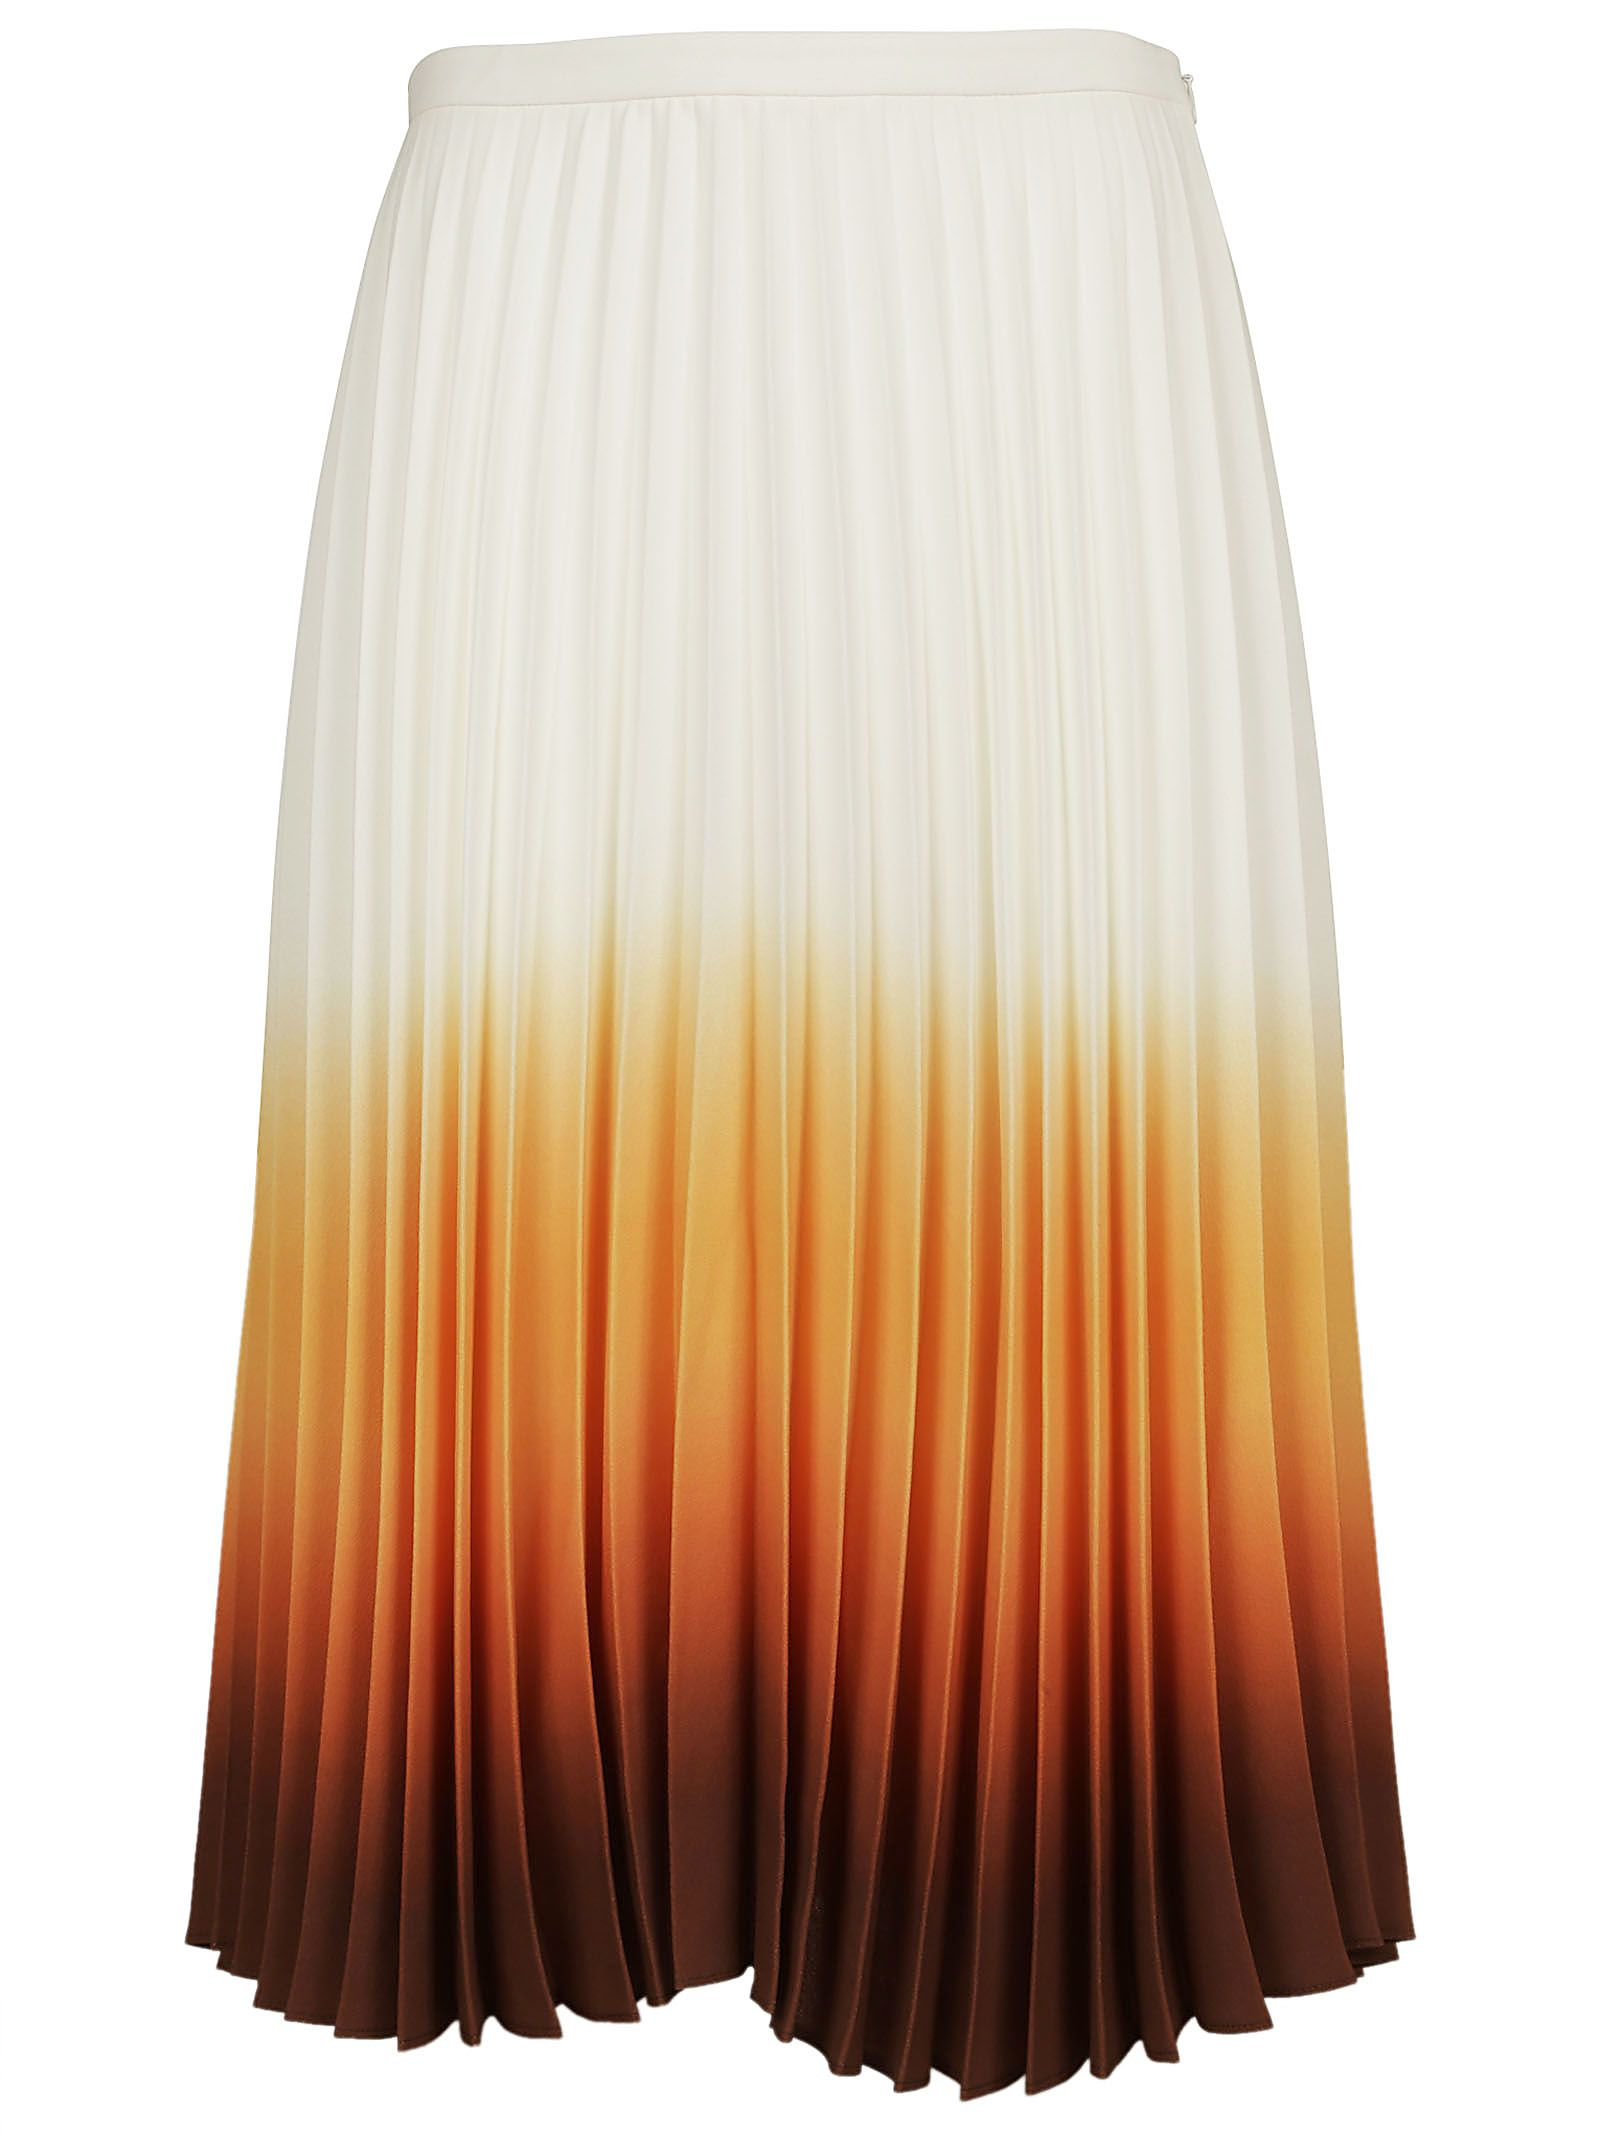 J.w. Anderson Ombr? Pleated Skirt